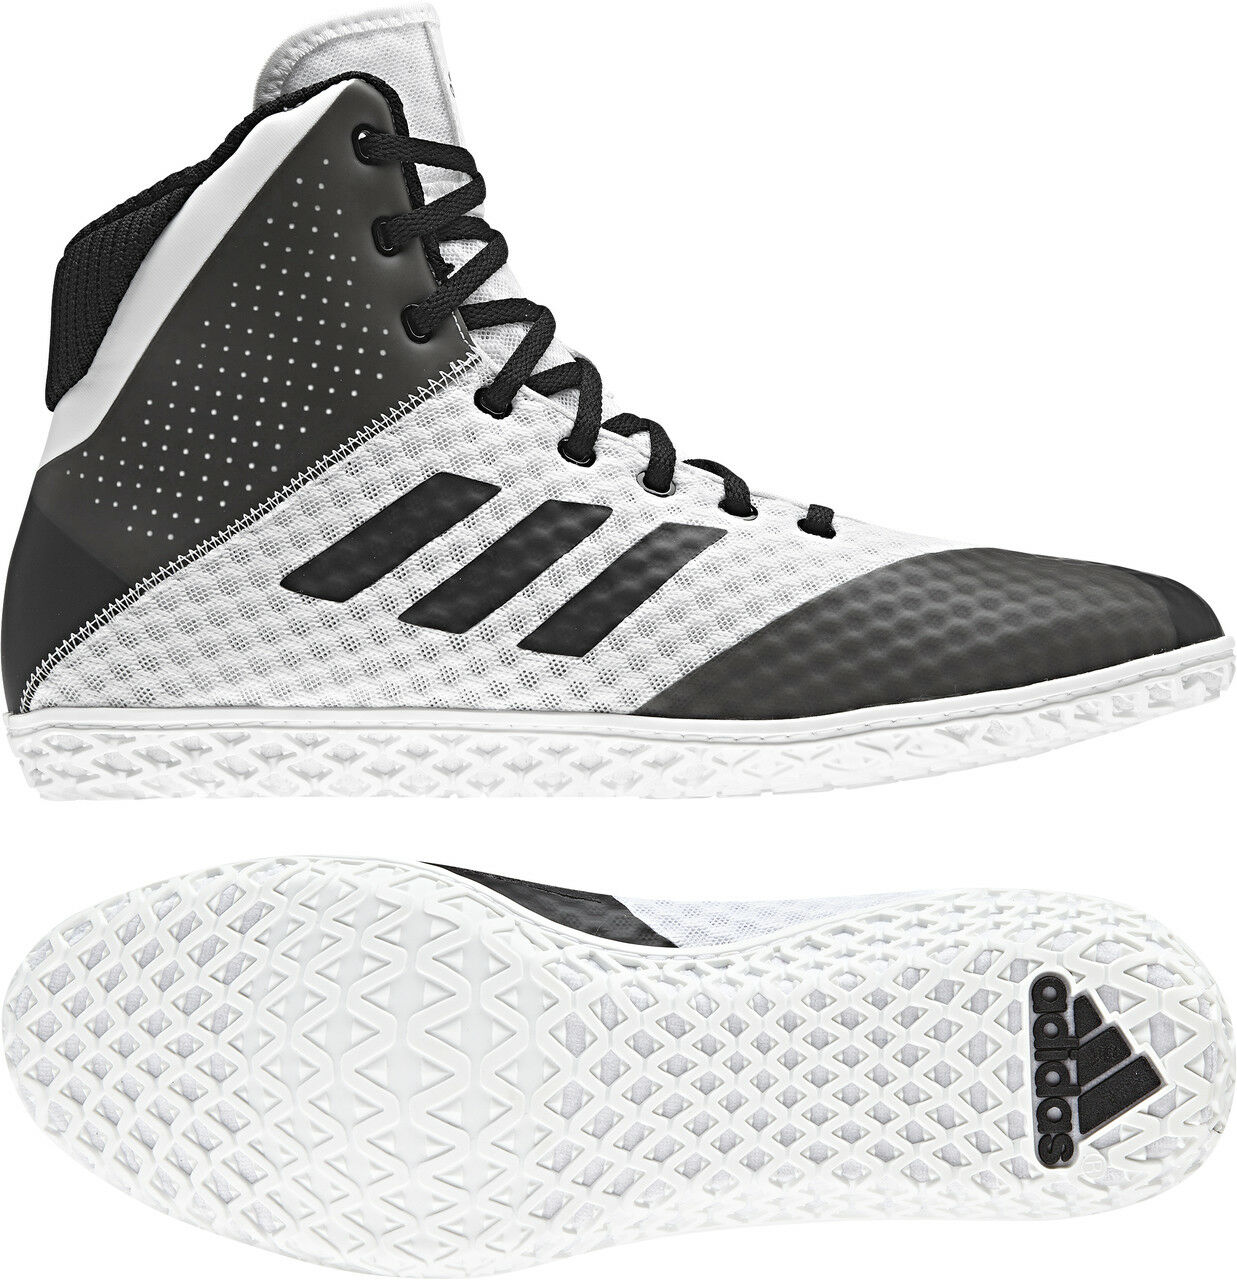 Adidas 2018 Mat Wizard 4 White Black Wrestling shoes Men's Adult Adidas shoes